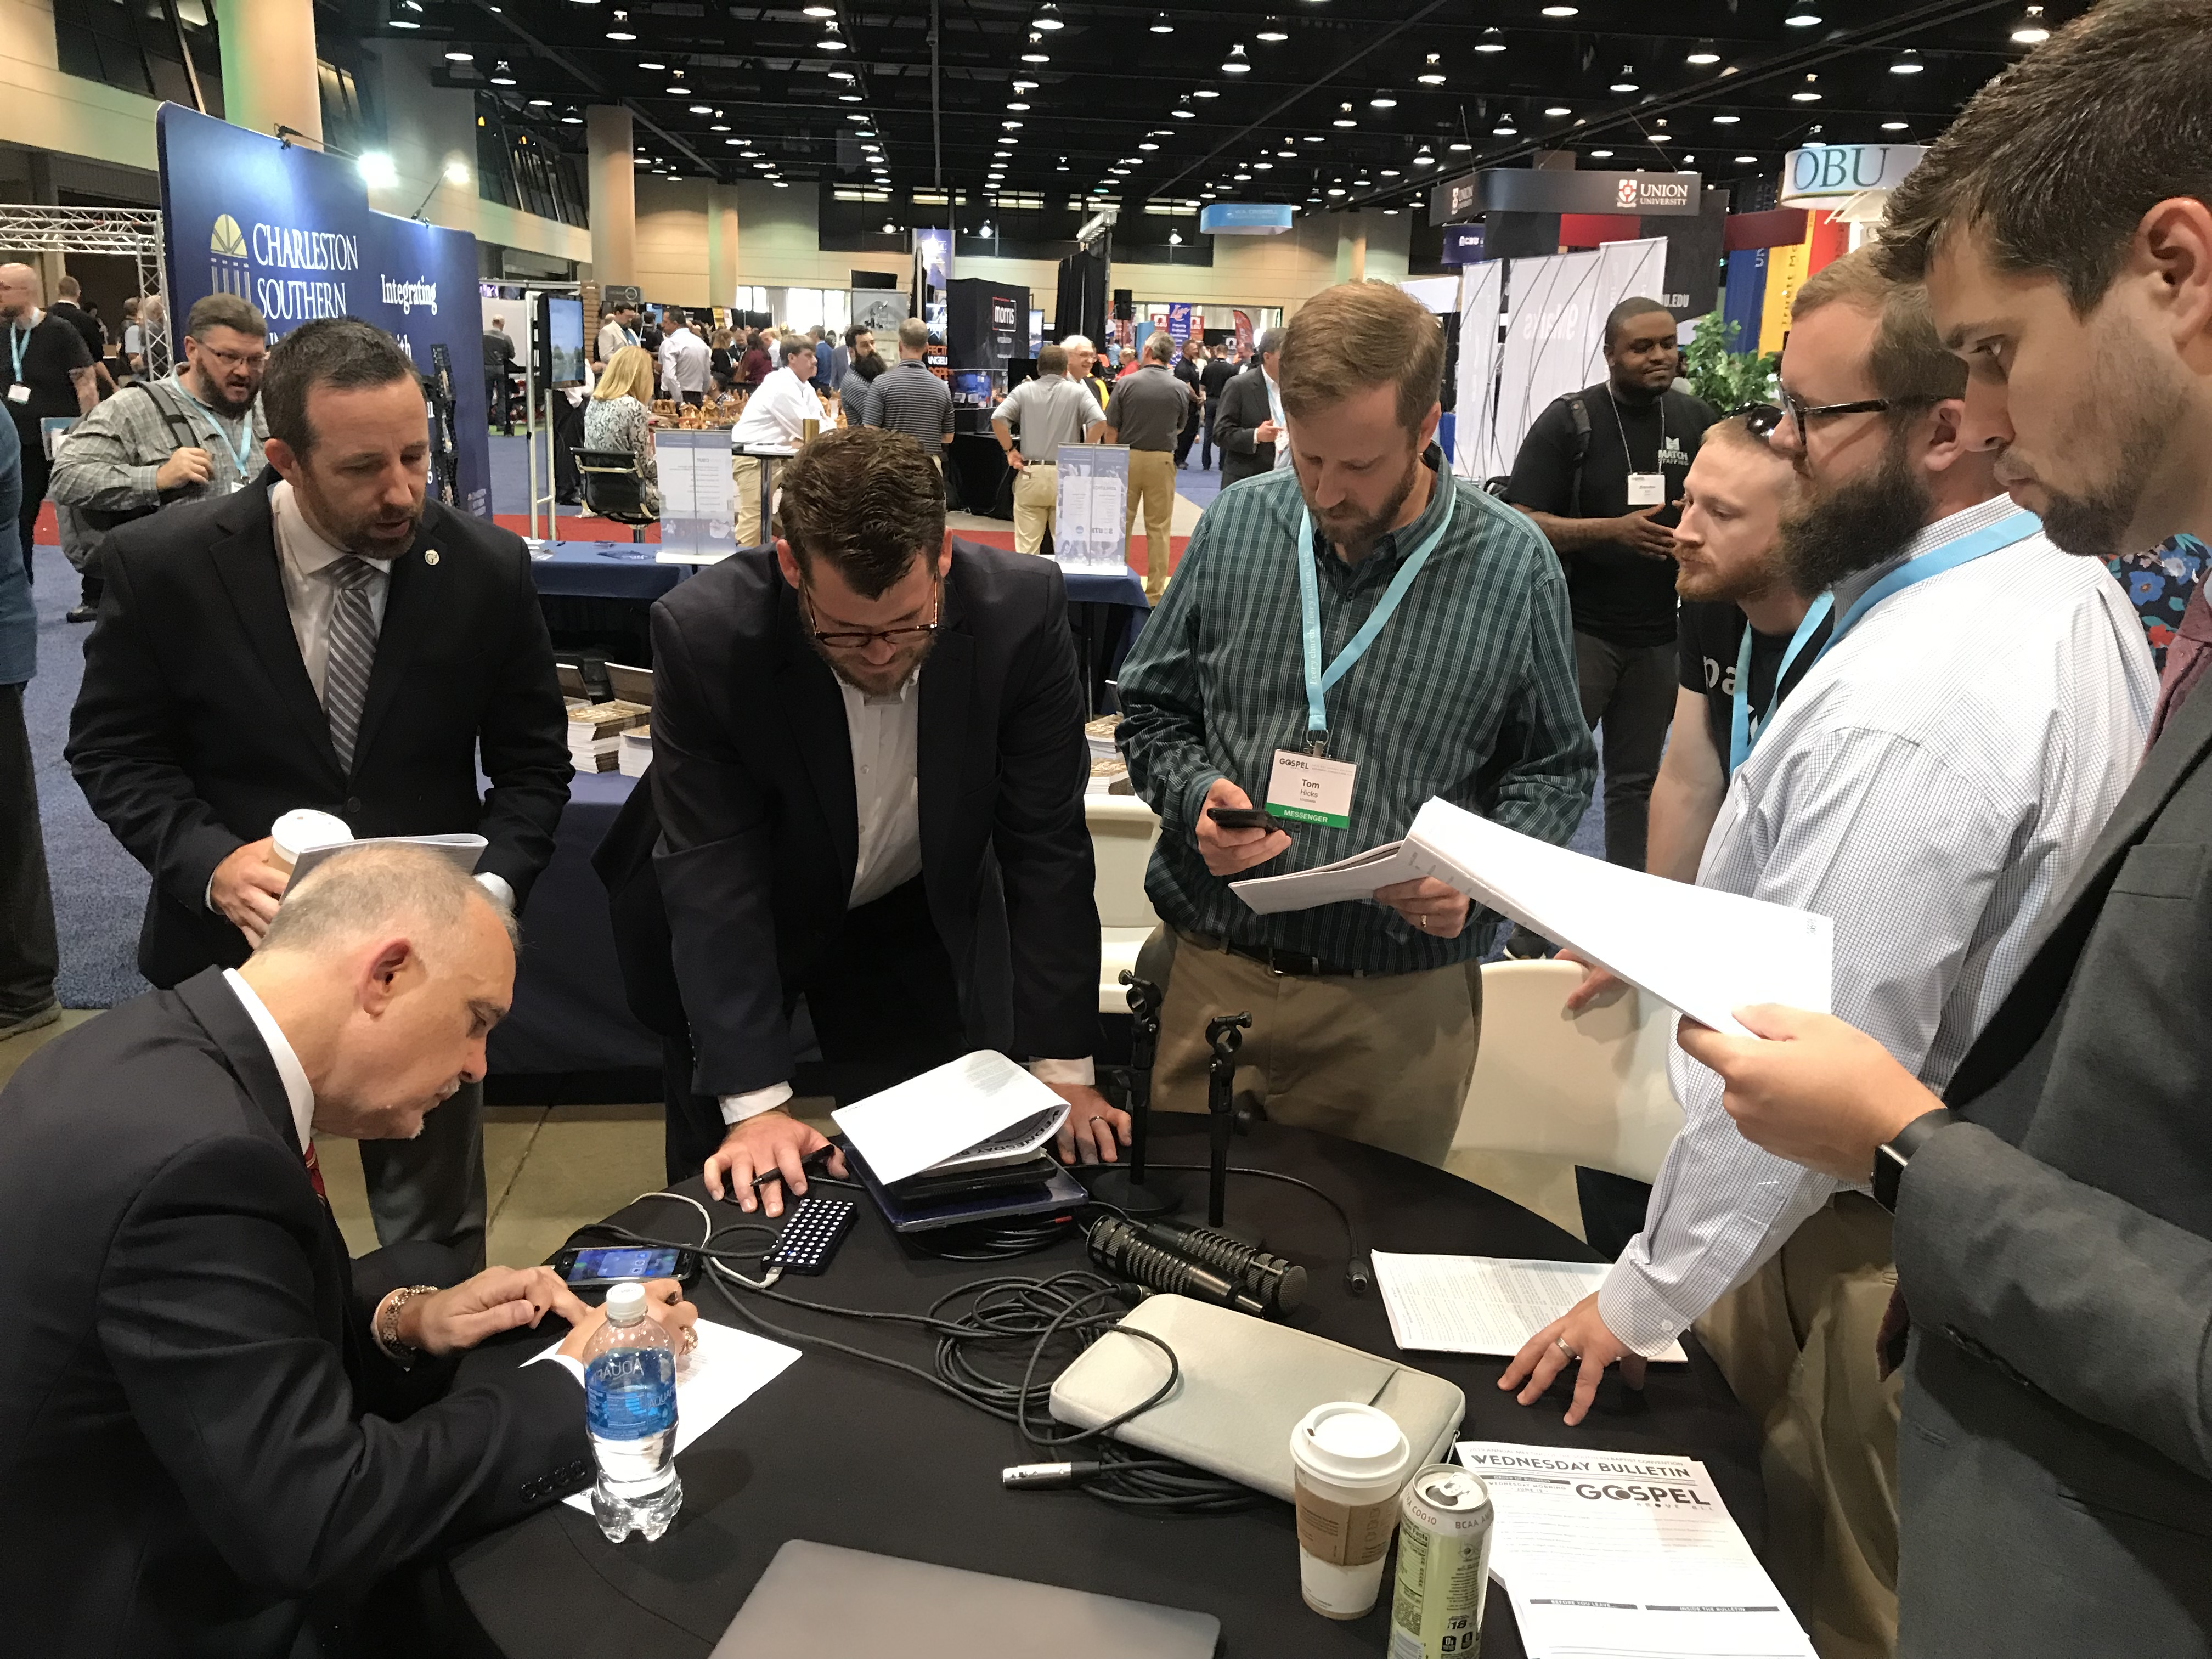 Resolution 9 and the Southern Baptist Convention 2019 - Founders